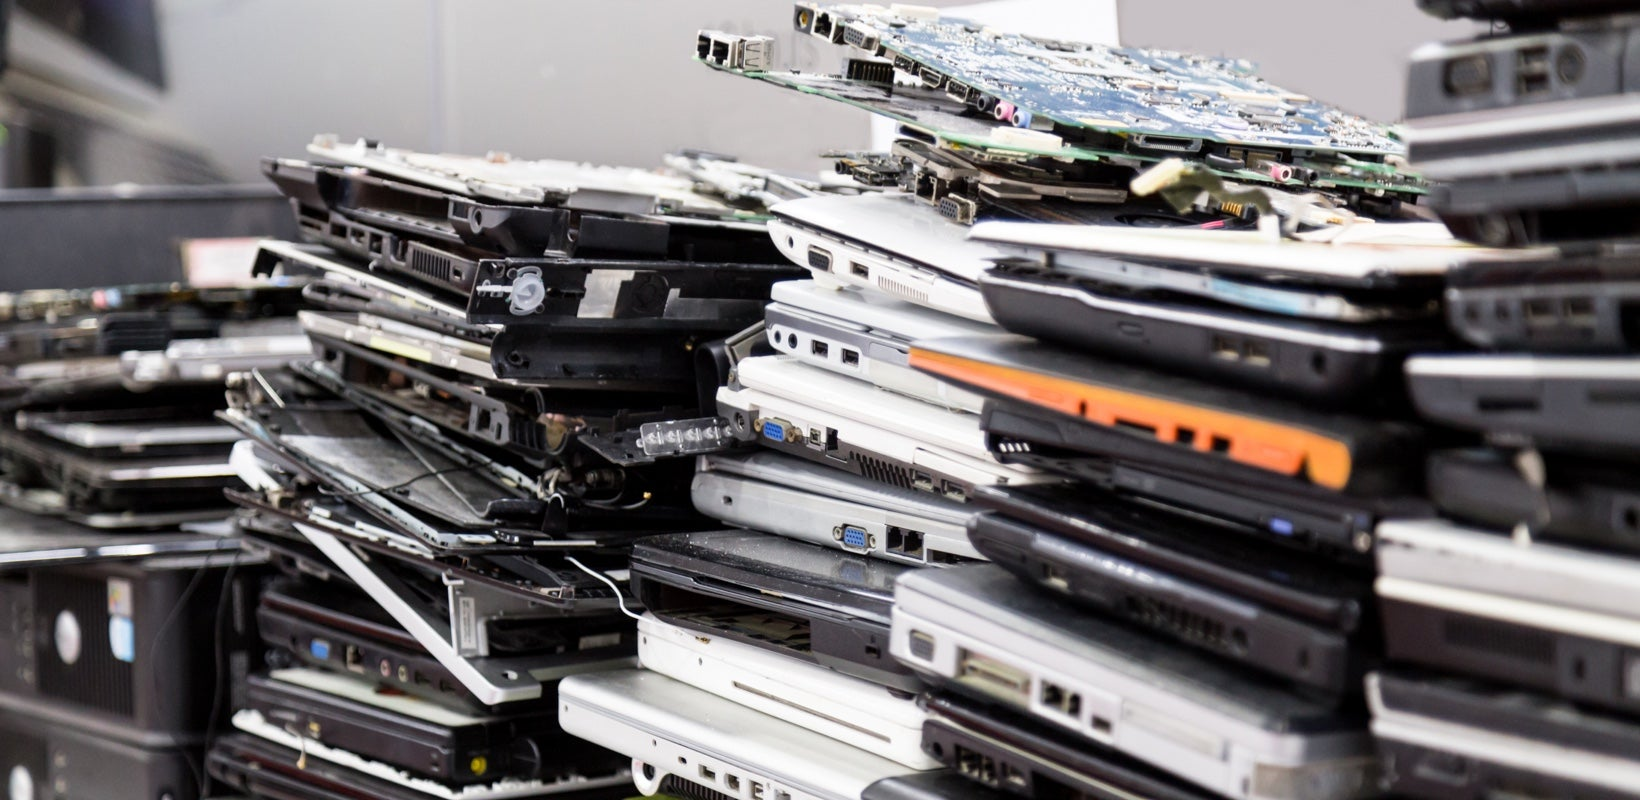 By 2030, e-Waste Will Reach 2.5 Million Metric Tons Unless We 'Sober Up'